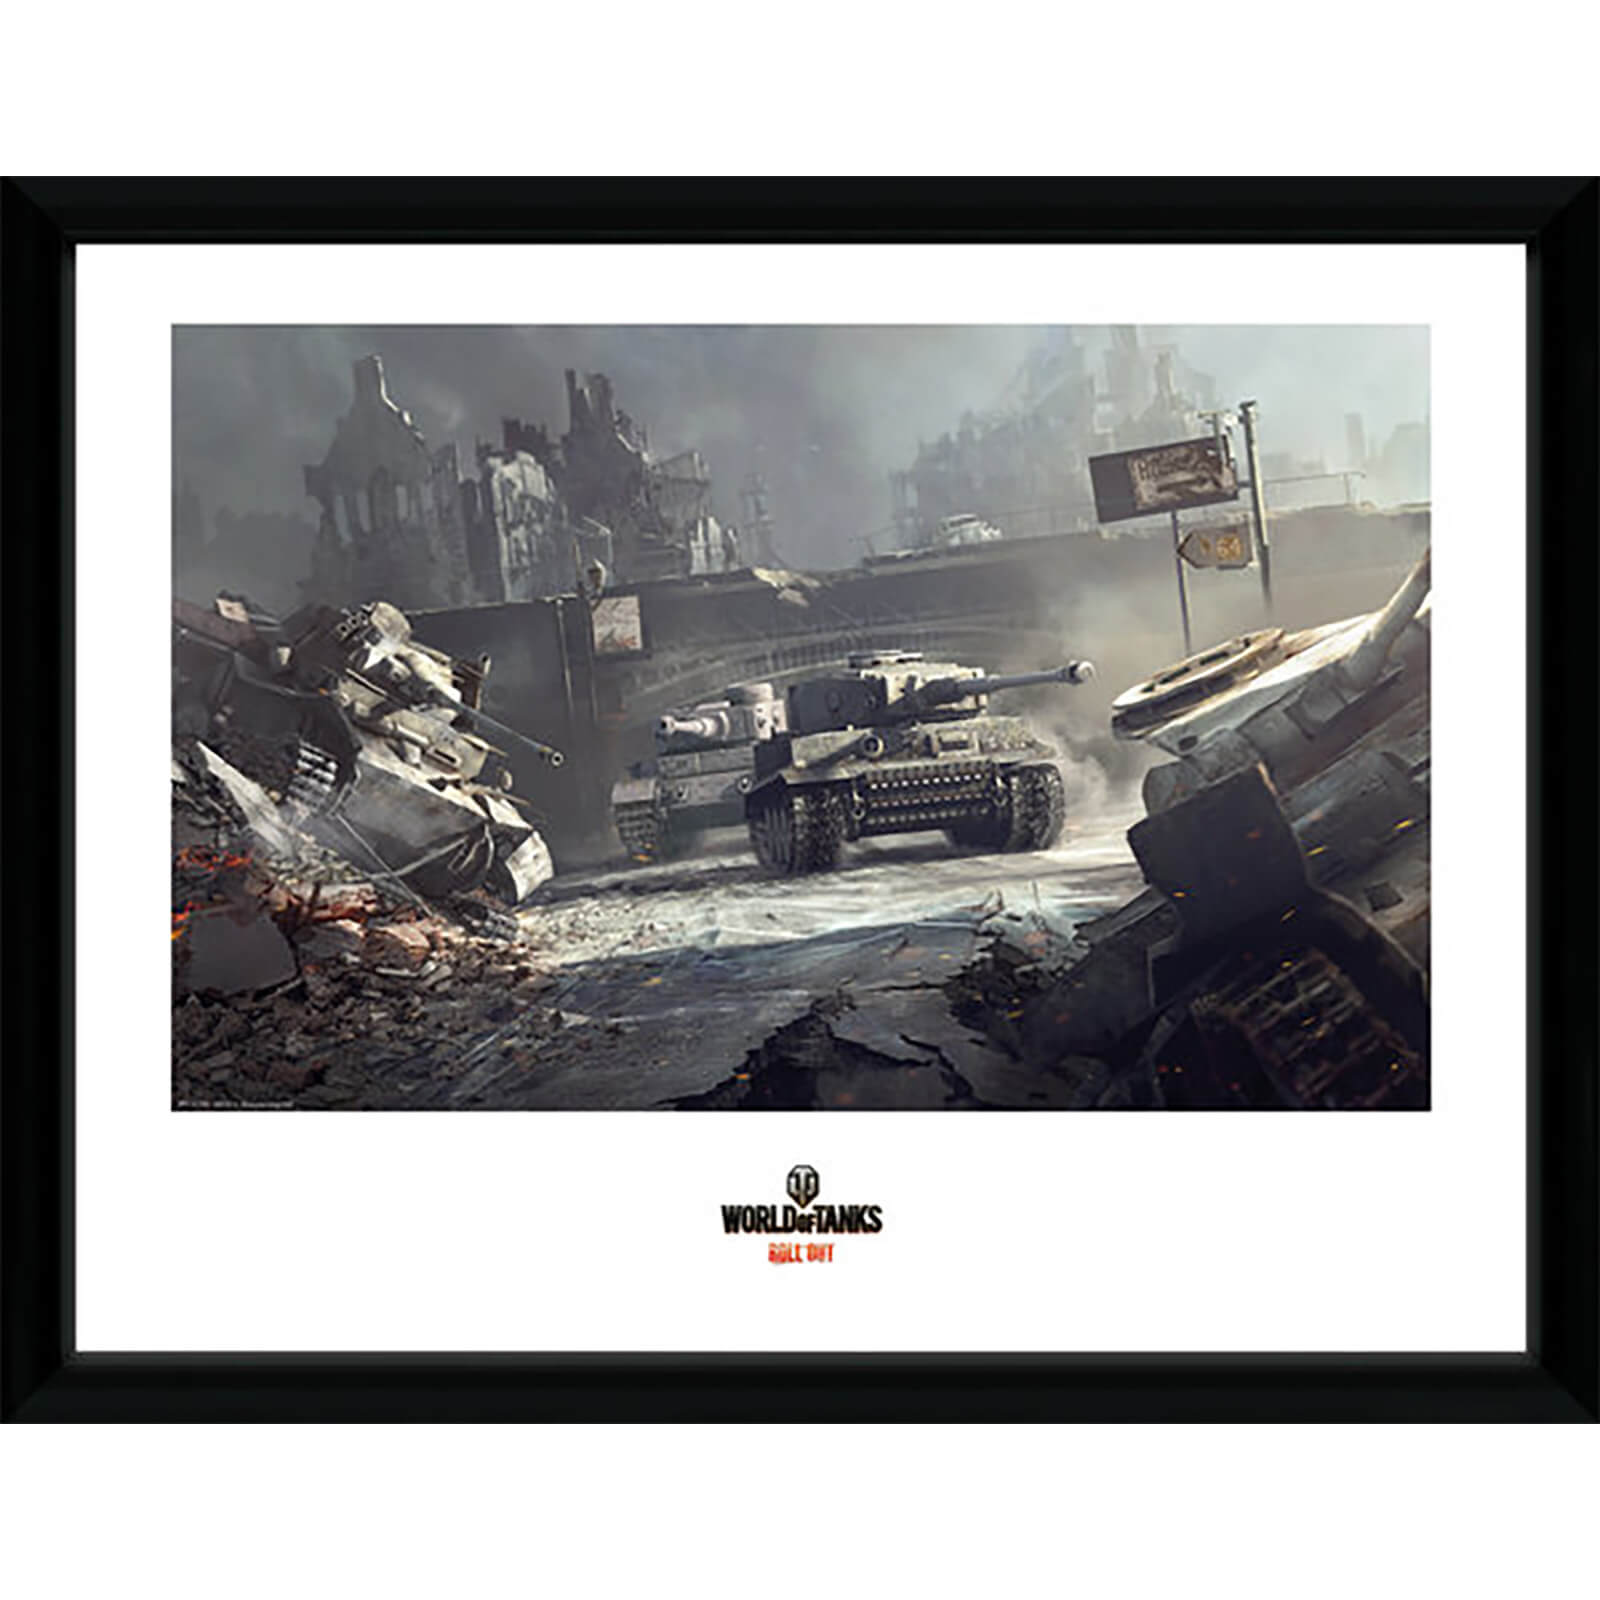 World of Tanks German Tank - 16 x 12 Inches Framed Photograph